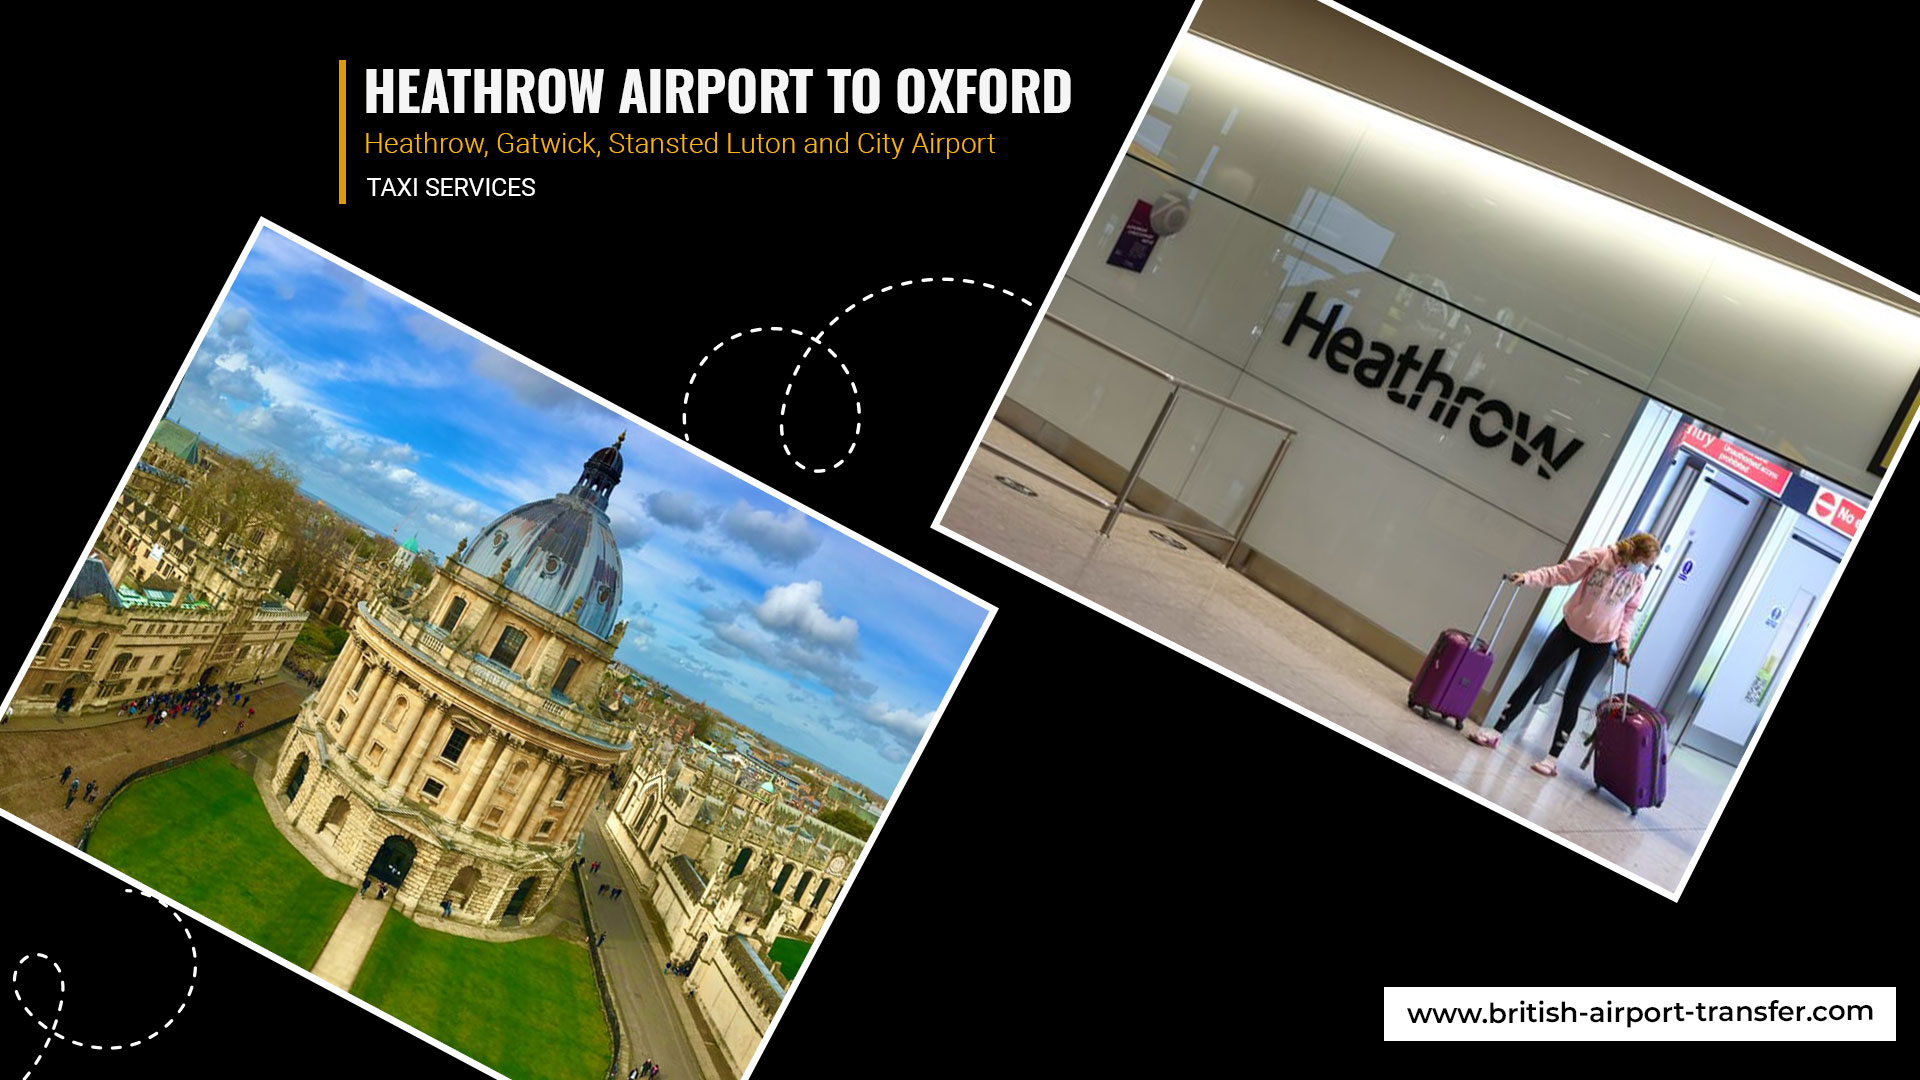 Taxi Service – Heathrow Airport to Oxford